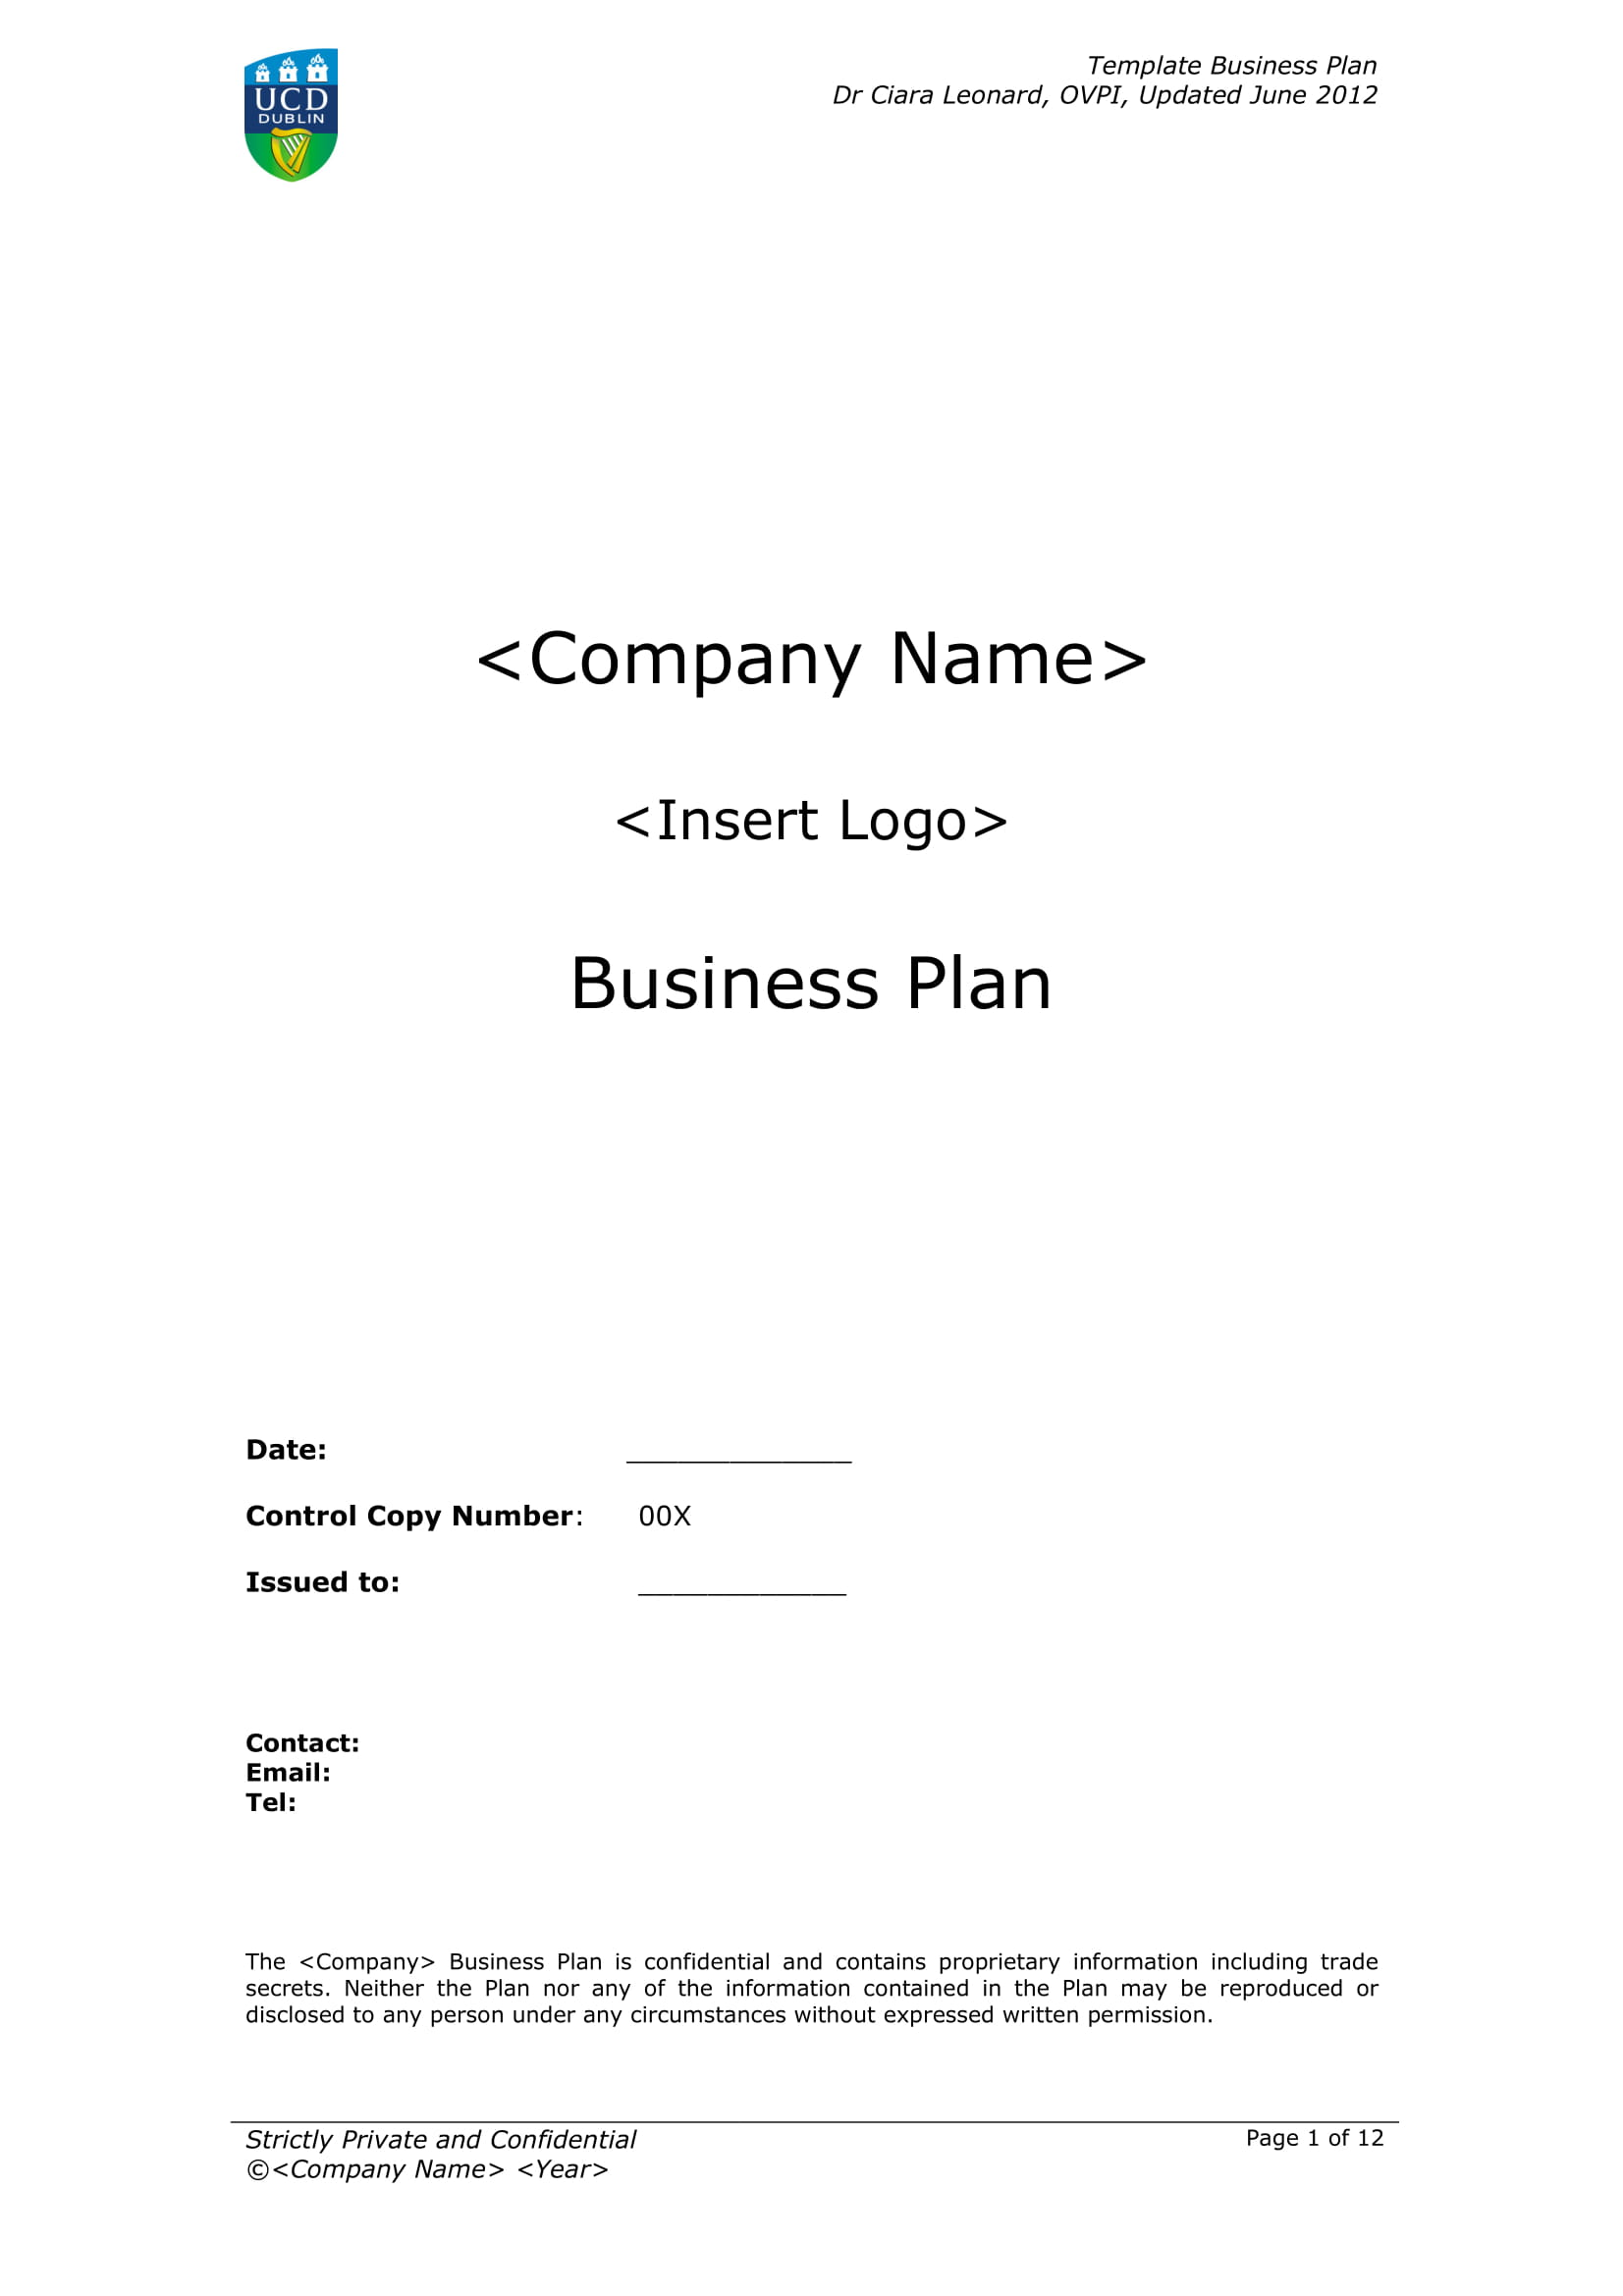 9 market analysis business plan examples pdf business plan template with marketing analysis example friedricerecipe Image collections